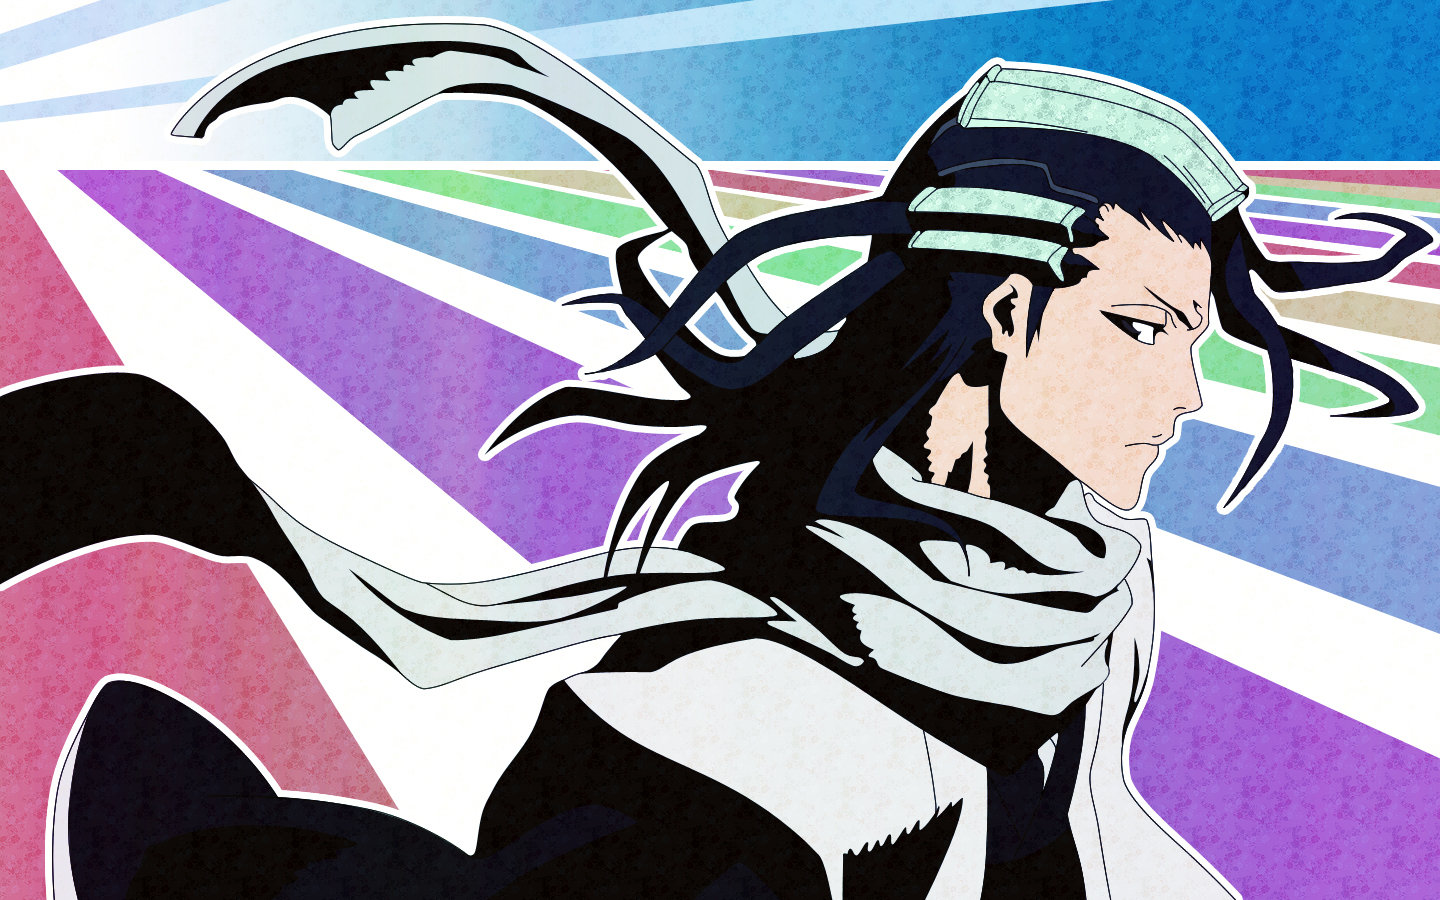 Best Byakuya Kuchiki wallpaper ID:417349 for High Resolution hd 1440x900 desktop